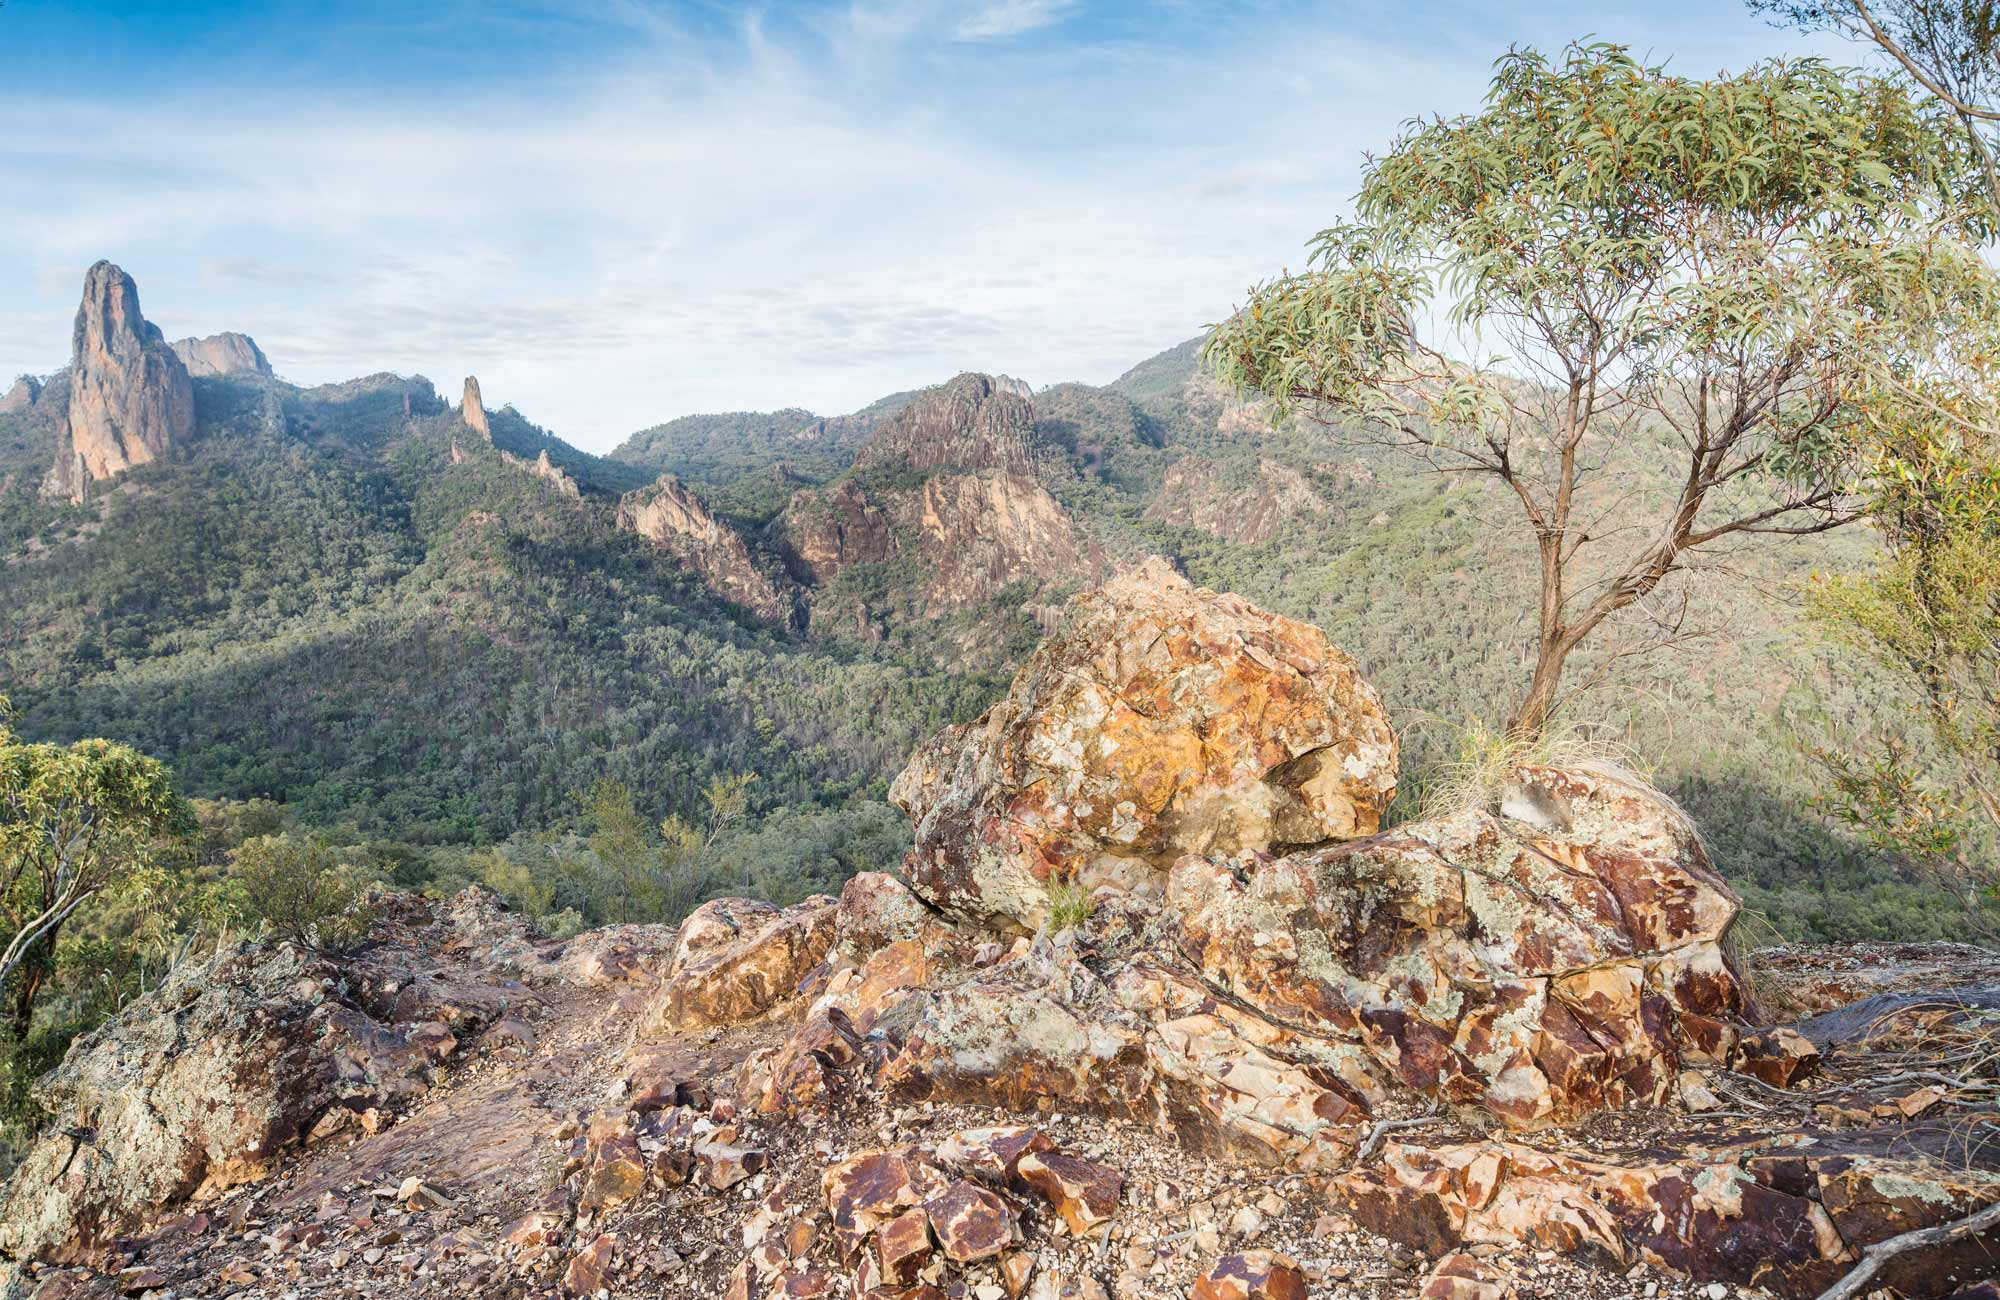 View of Breadknife rock formation in Warrumbungle National Park. Photo: Simone Cottrell/OEH.